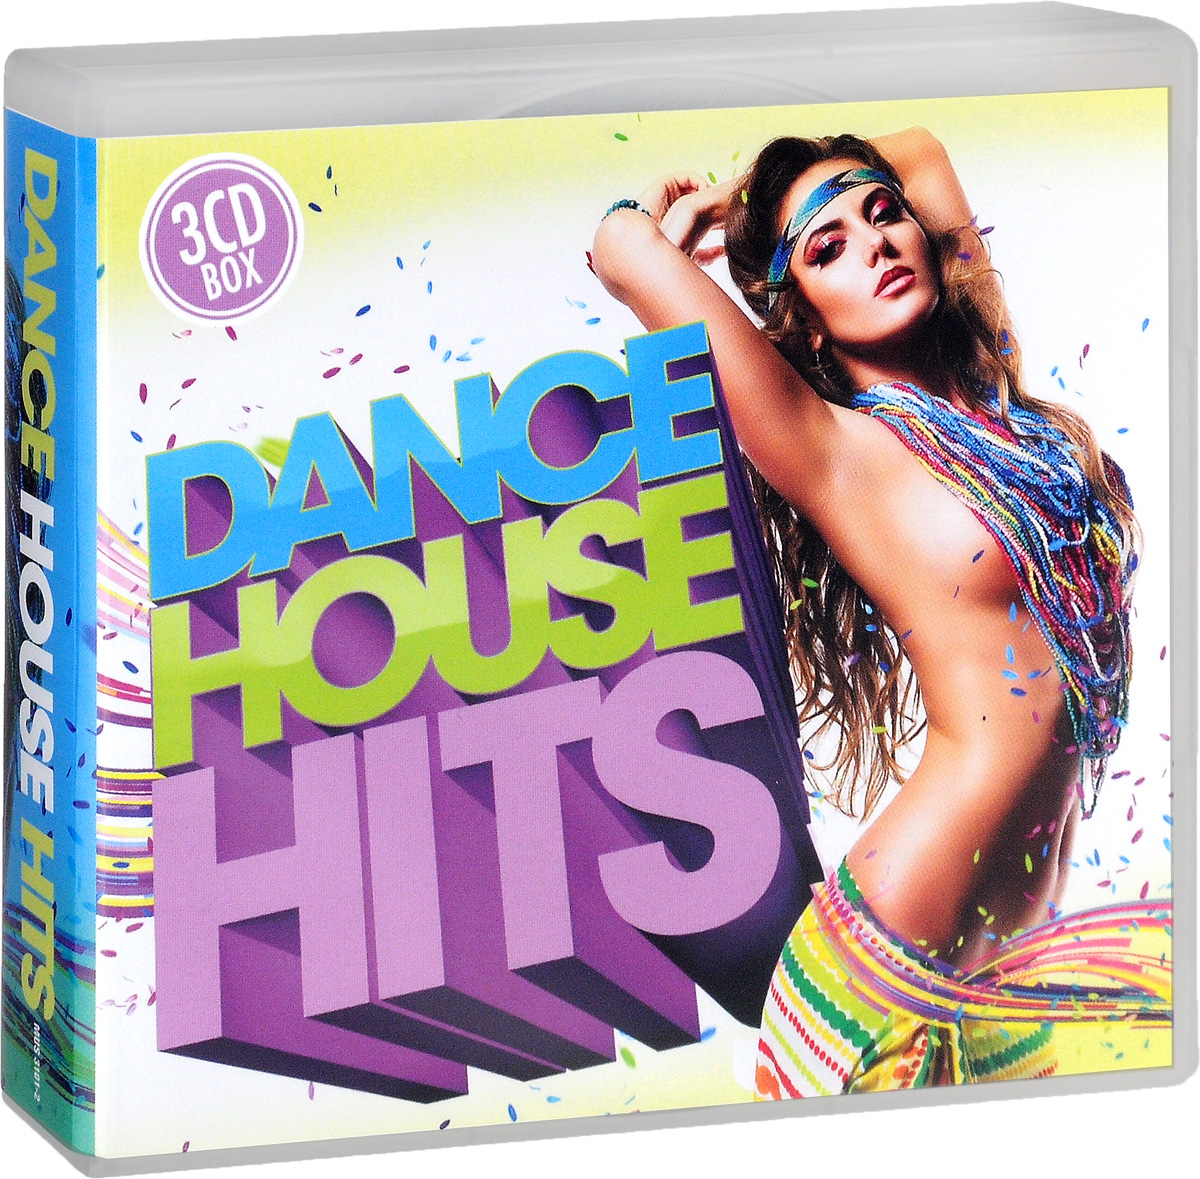 Axwell,Дэвид Гордон,Richelle Dance House Hits (3 CD) richelle mead succubus heat